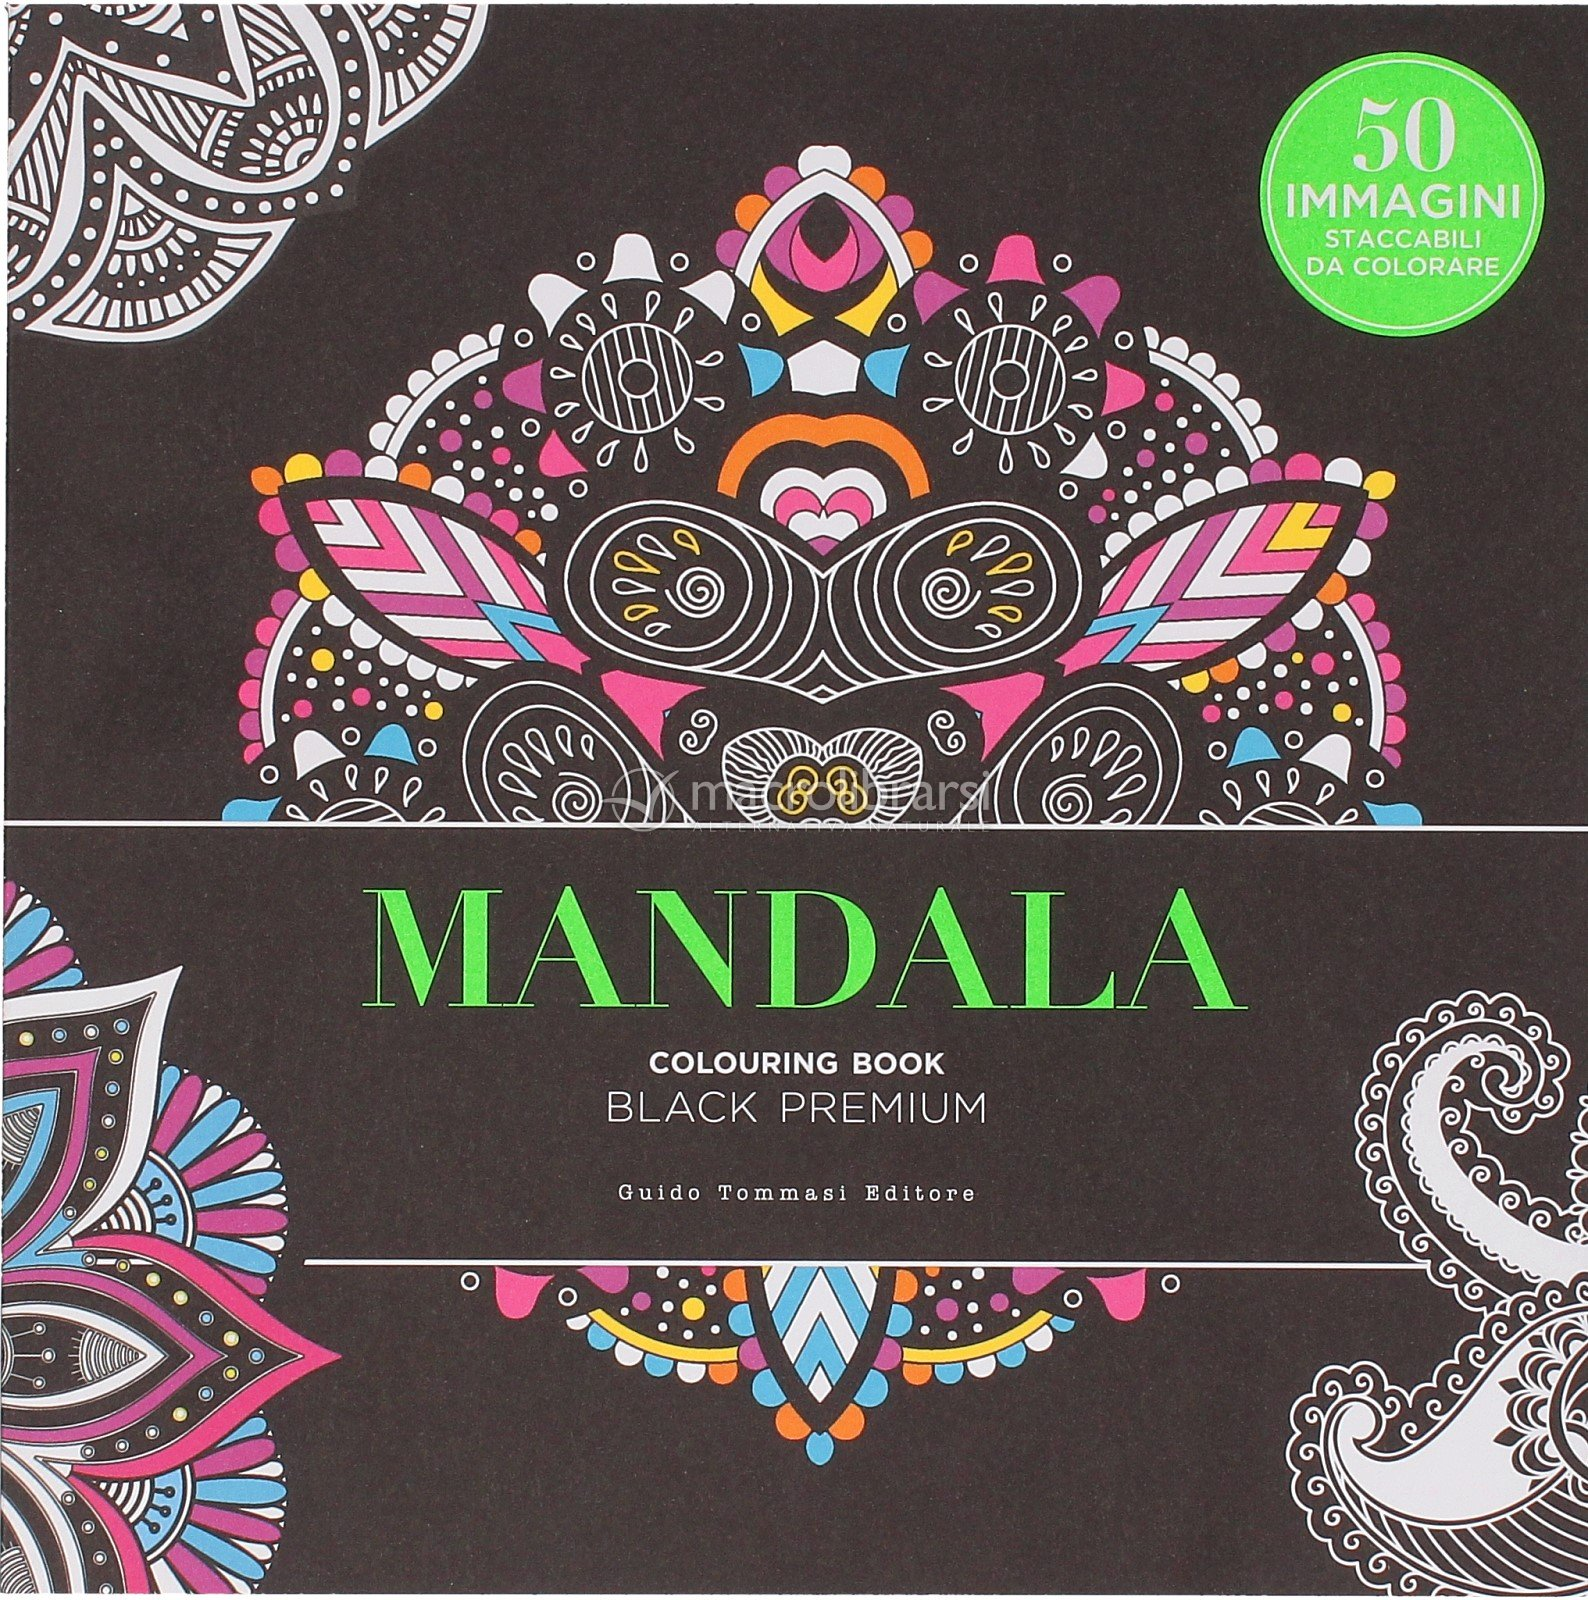 Mandala Colouring Book Black Premium Libro